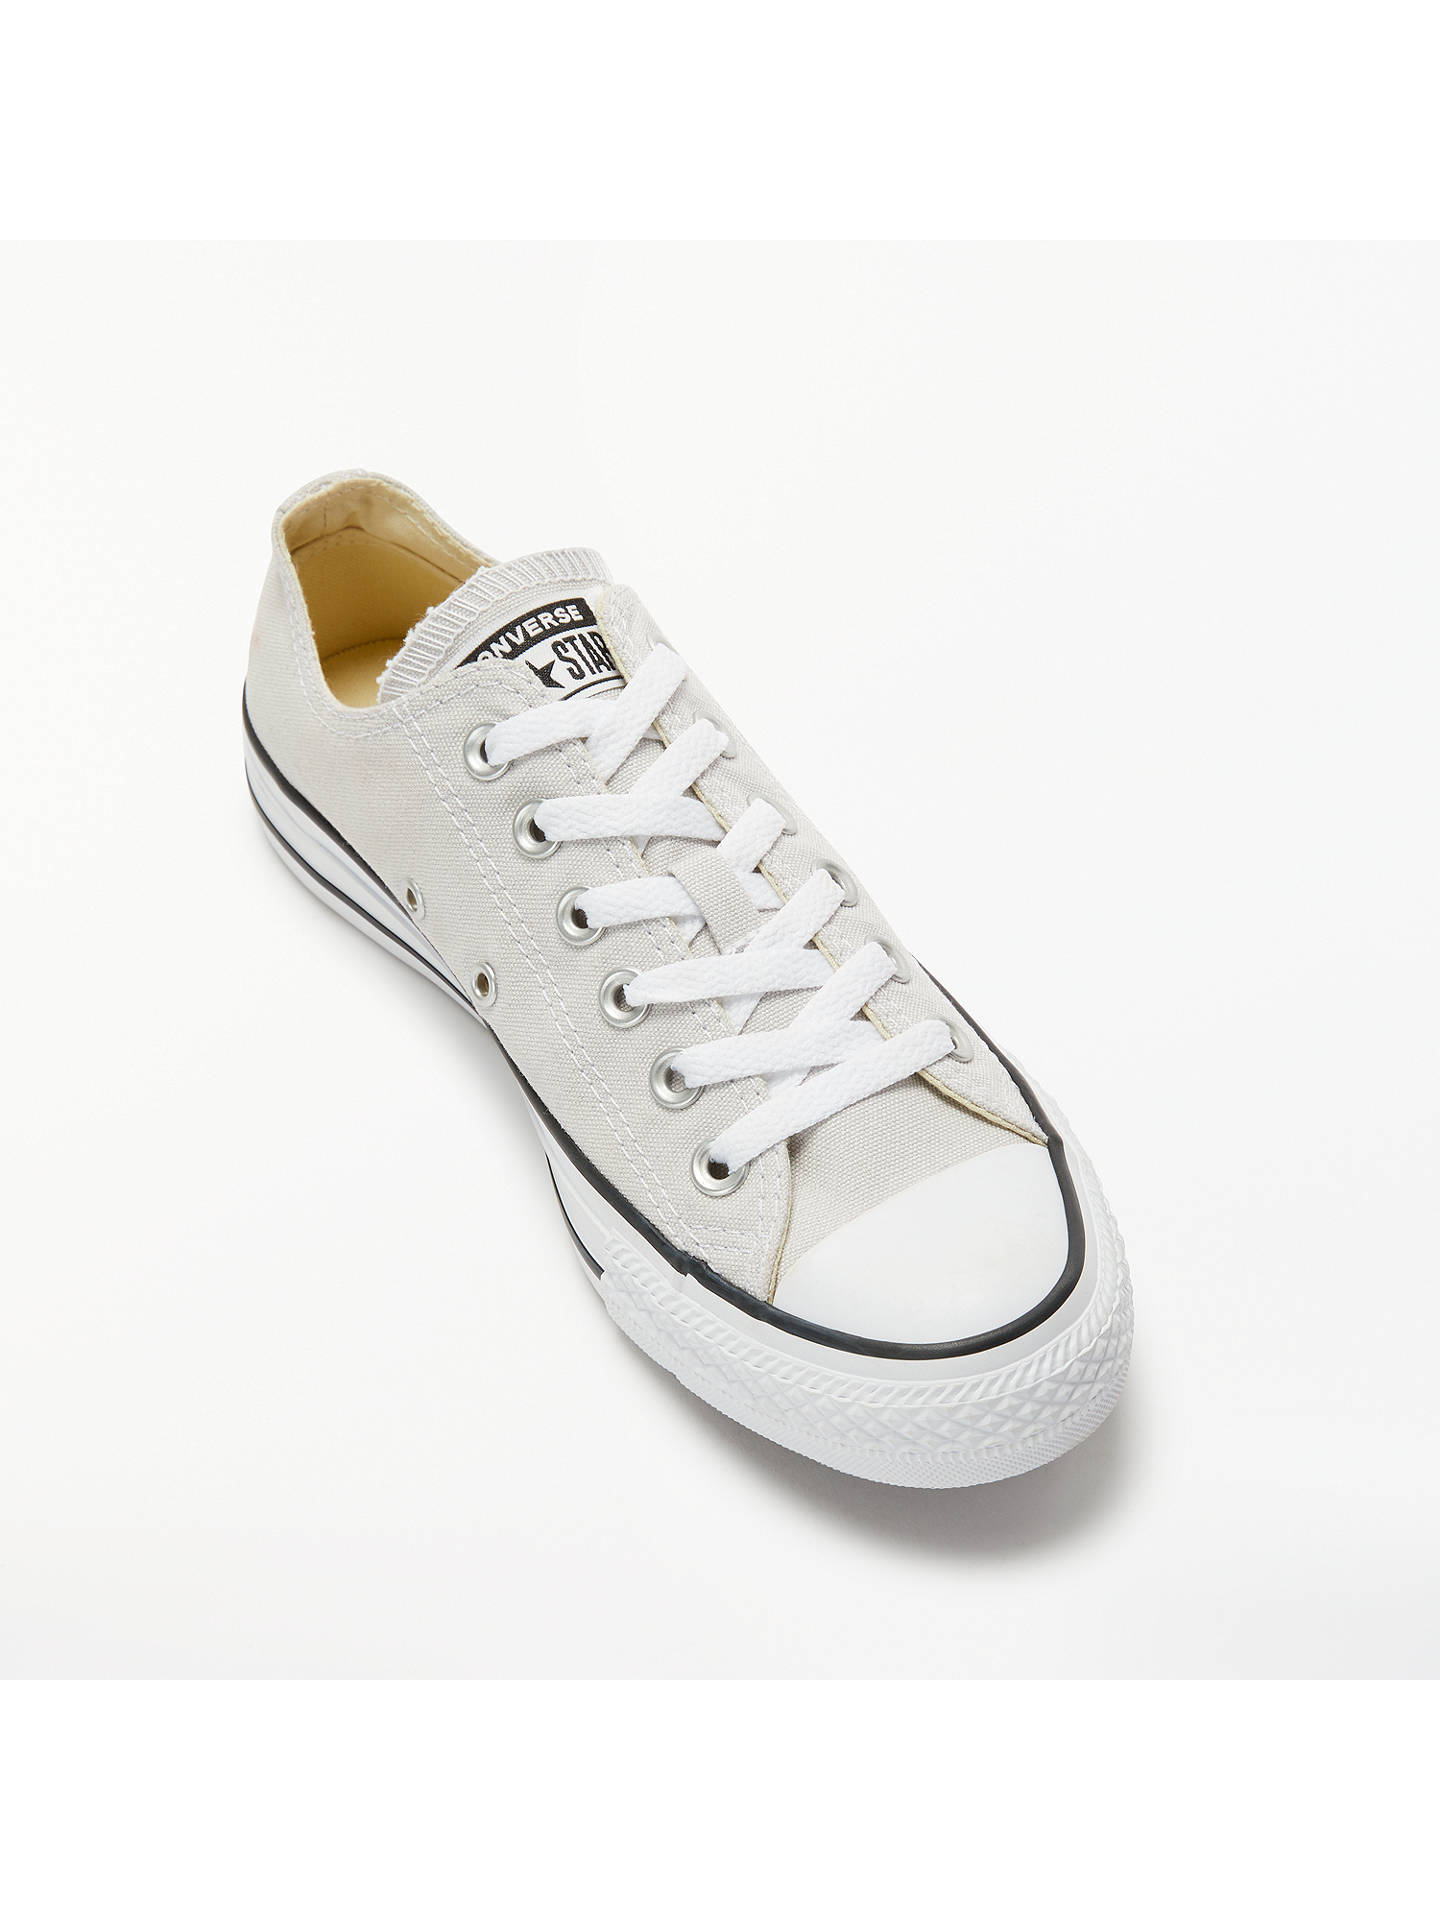 33e0e4fd28d9 ... Buy Converse Chuck Taylor All Star Women s Canvas Ox Low-Top Trainers